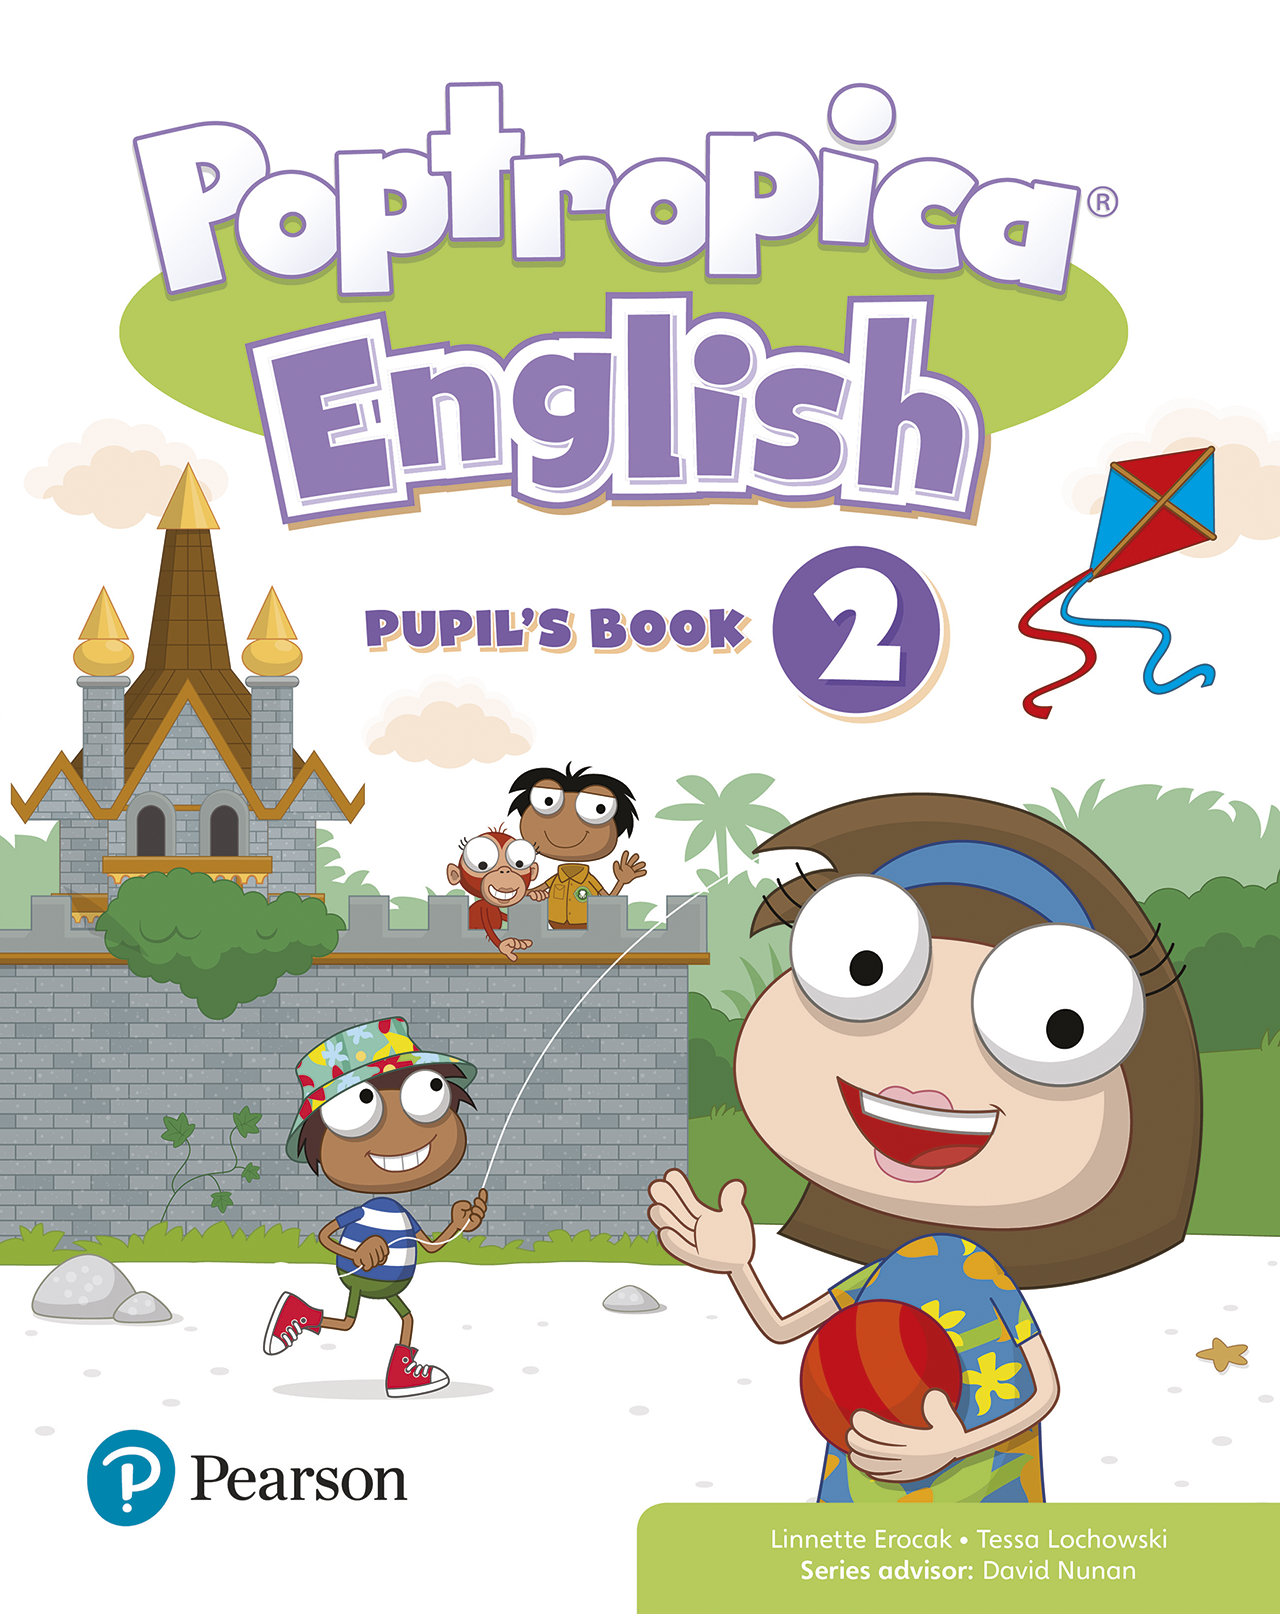 Pupil's Book 2